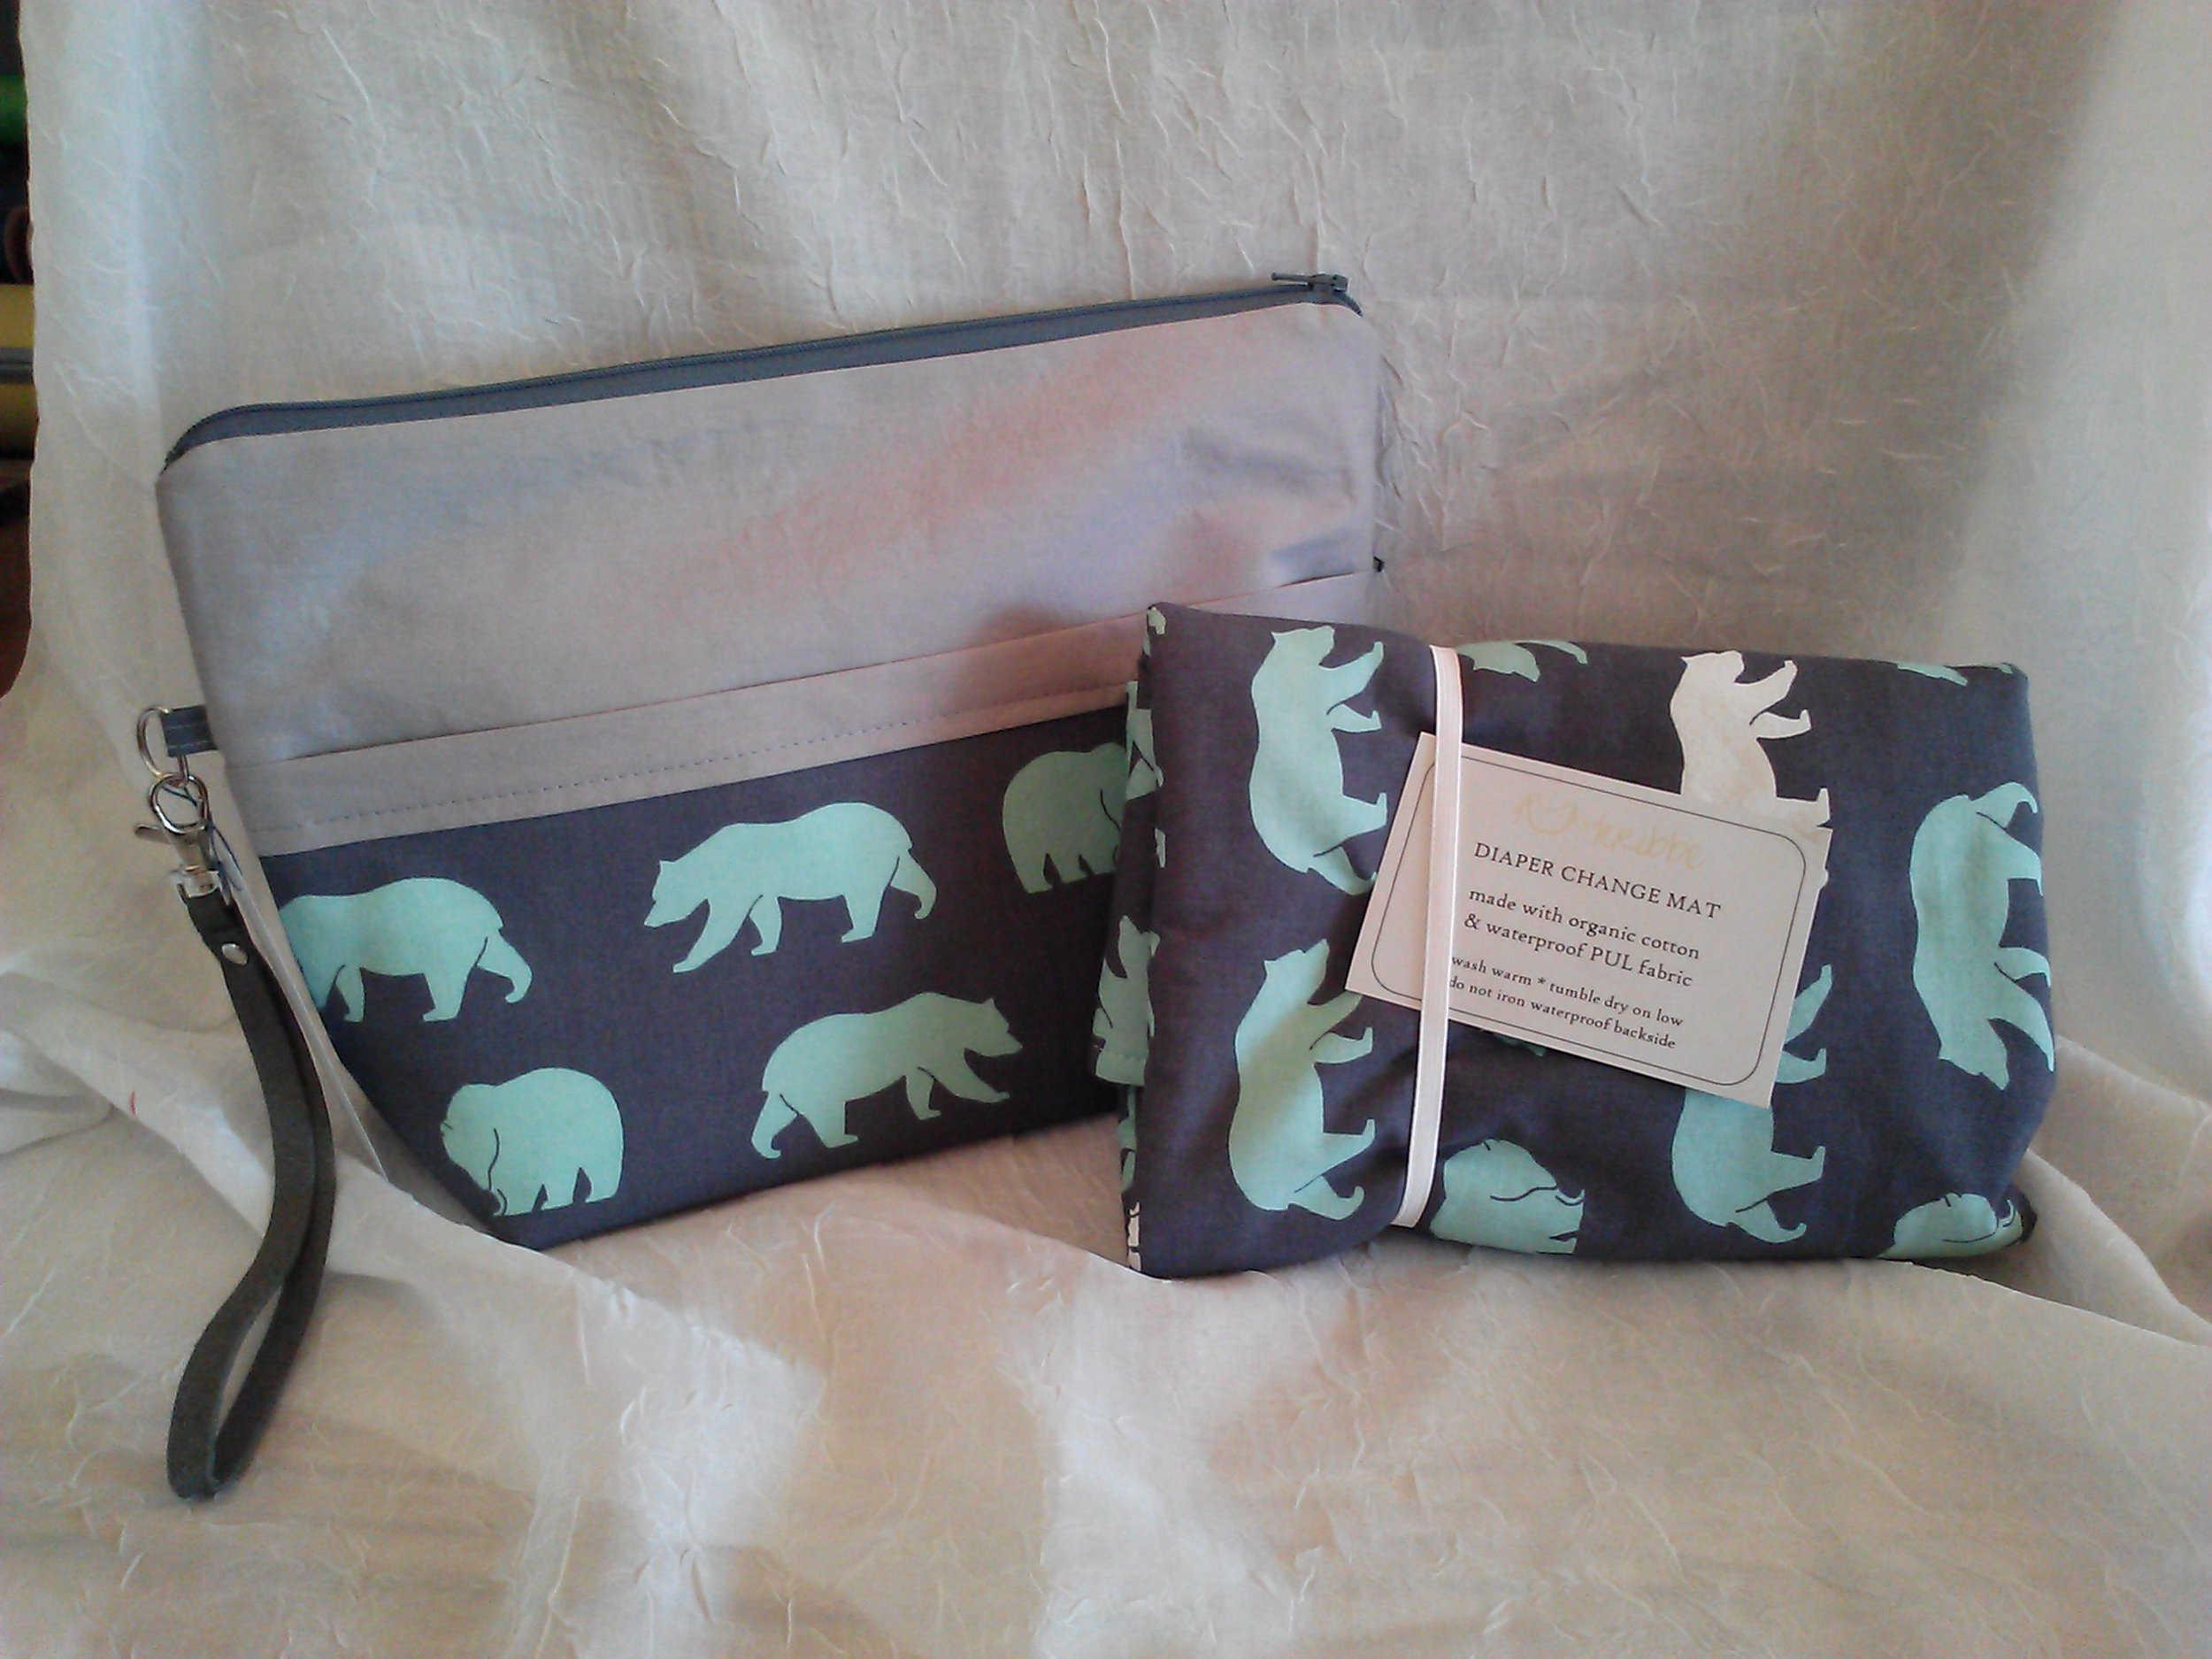 Portable Diaper Pouch with Changing Mat - Locally Handmade    $49.95    Wants 1  PURCHASED